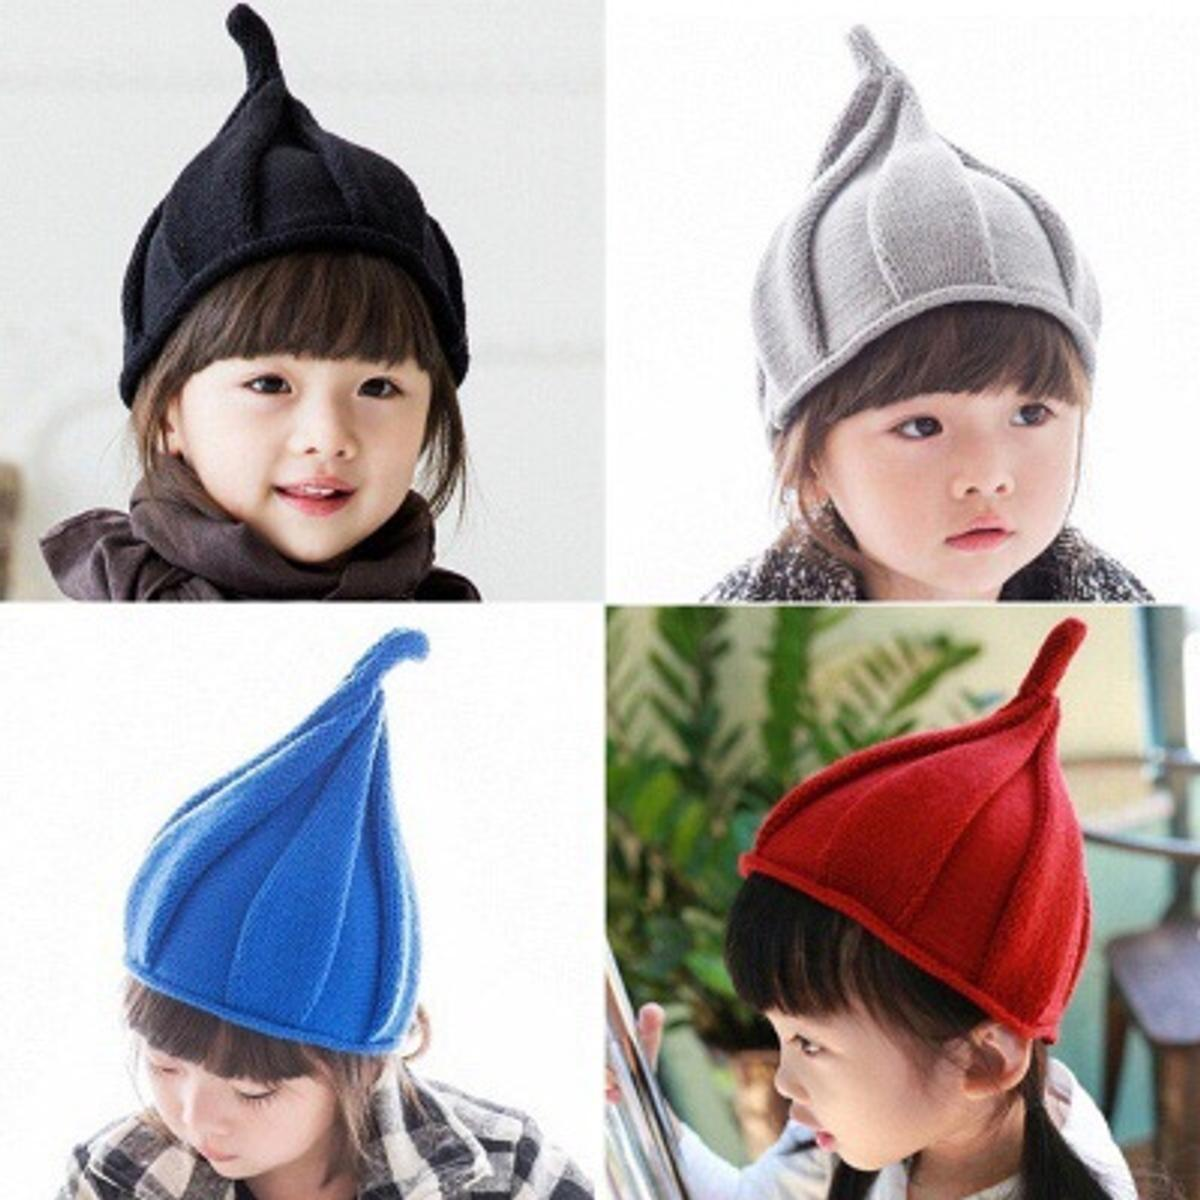 a5de9fa3b20 Flower tip Nipple children Hats in TW5 Hounslow for £4.00 for sale ...